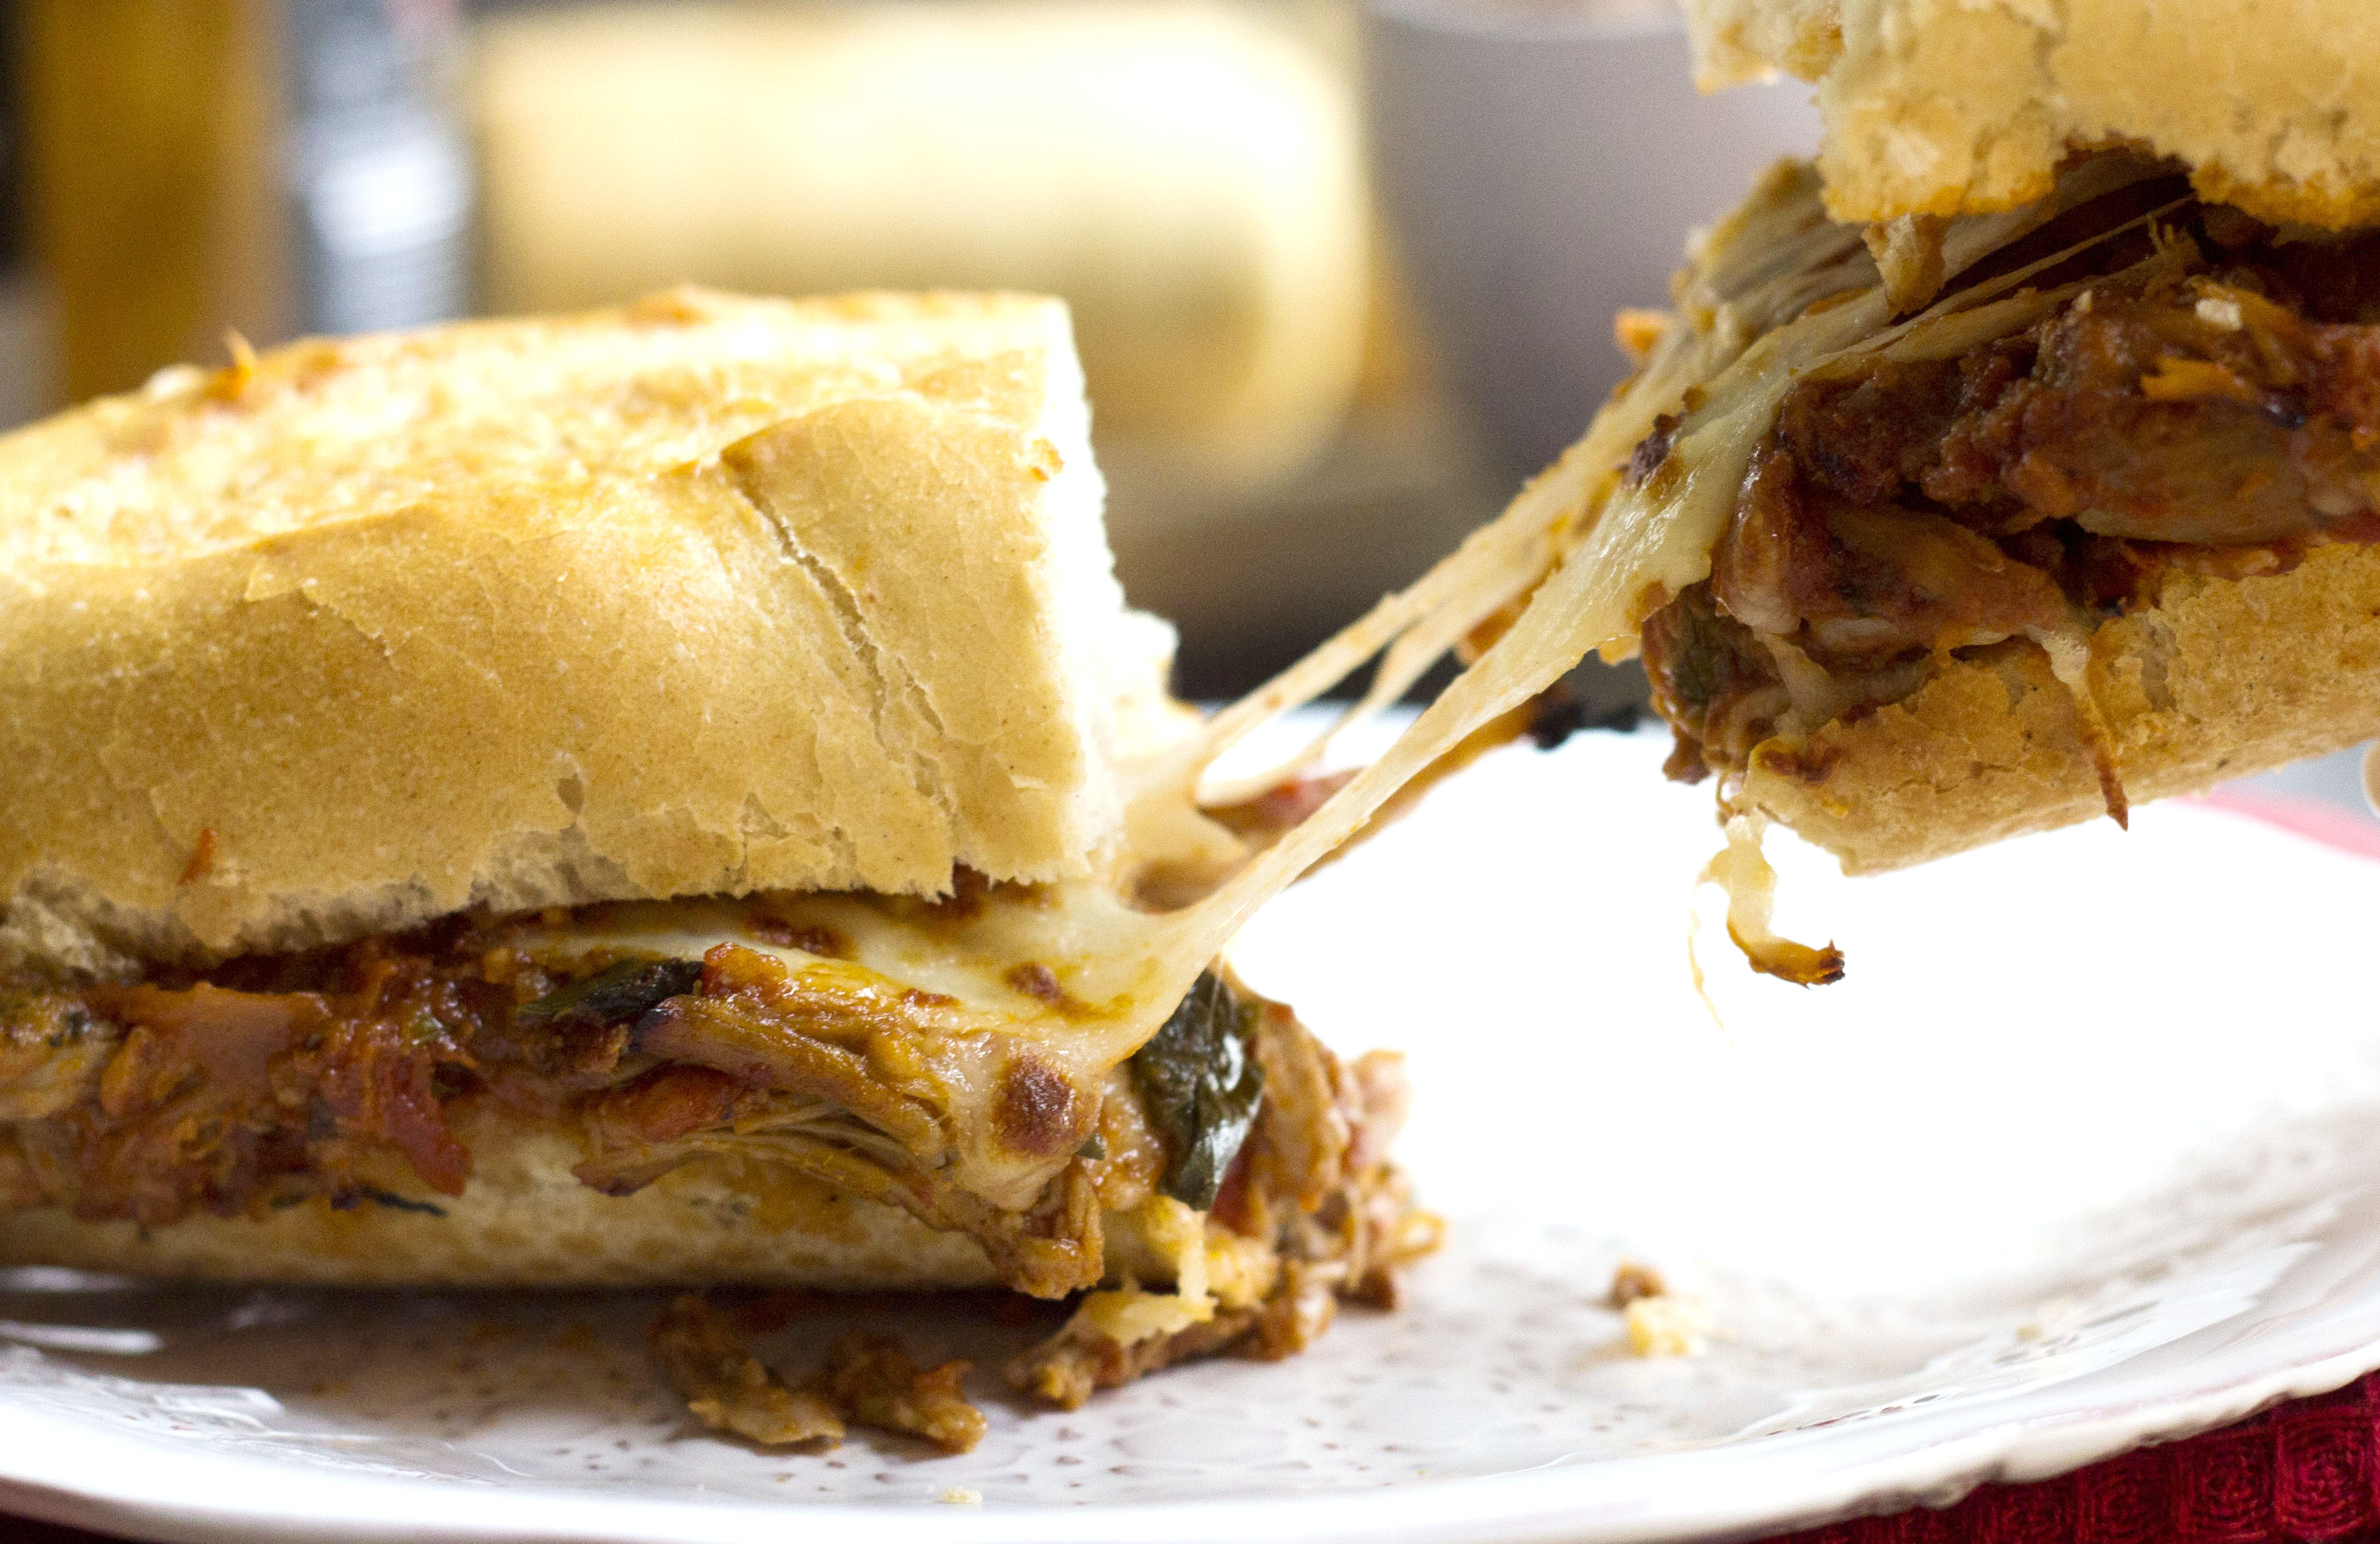 A pulled pork sandwich being pulled apart, with stringy cheese